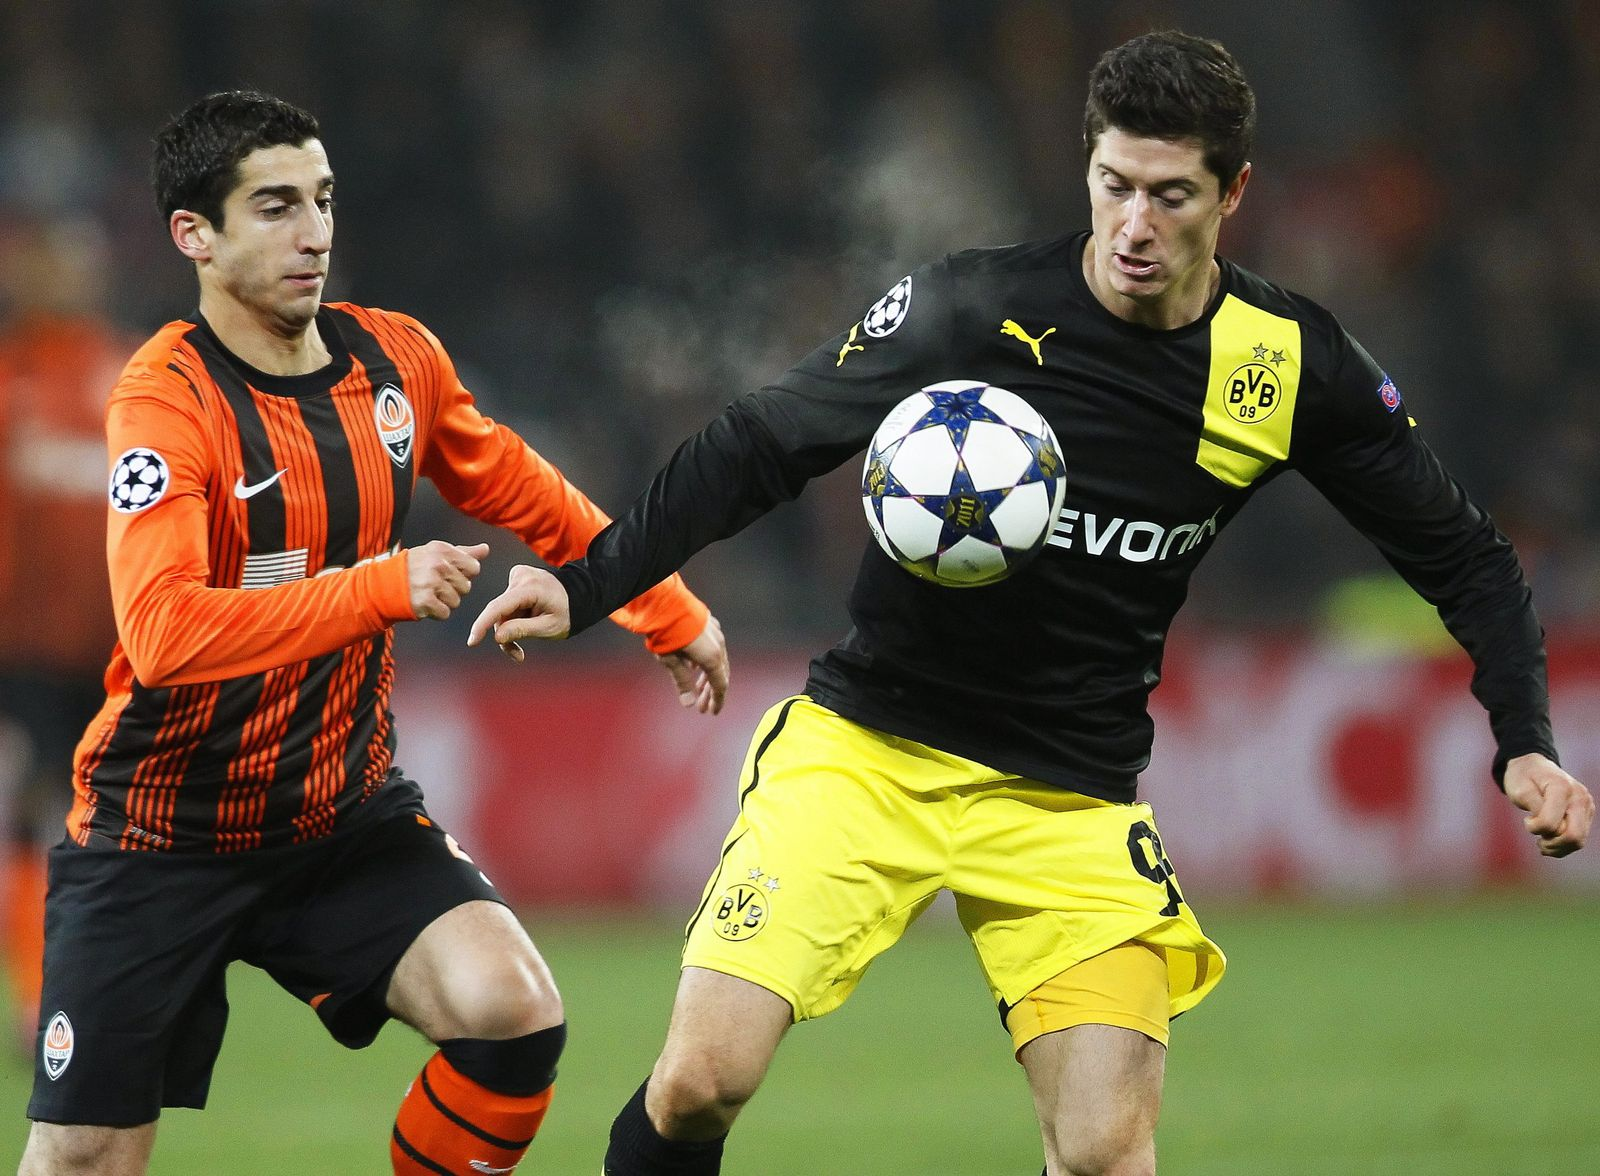 Borussia Dortmund in talks to sign Shakhtars Henrikh Mkhitaryan